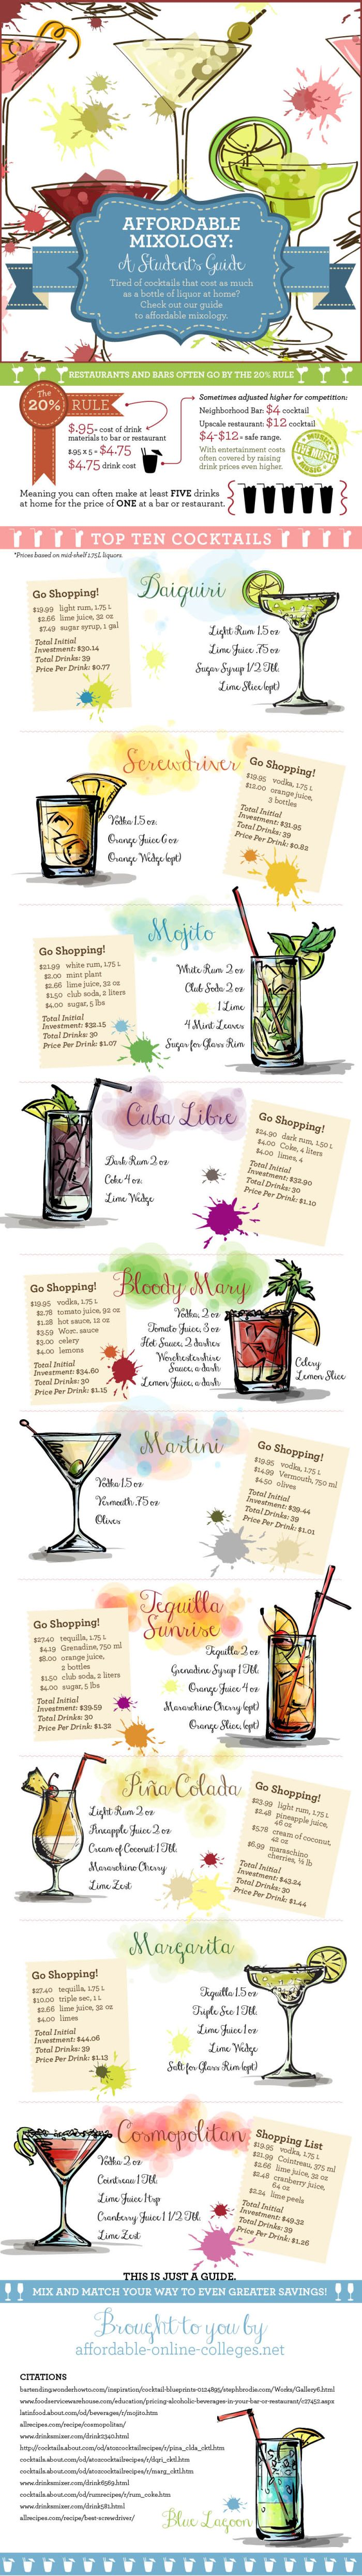 Affordable Mixology: A Student's Guide (infographic)